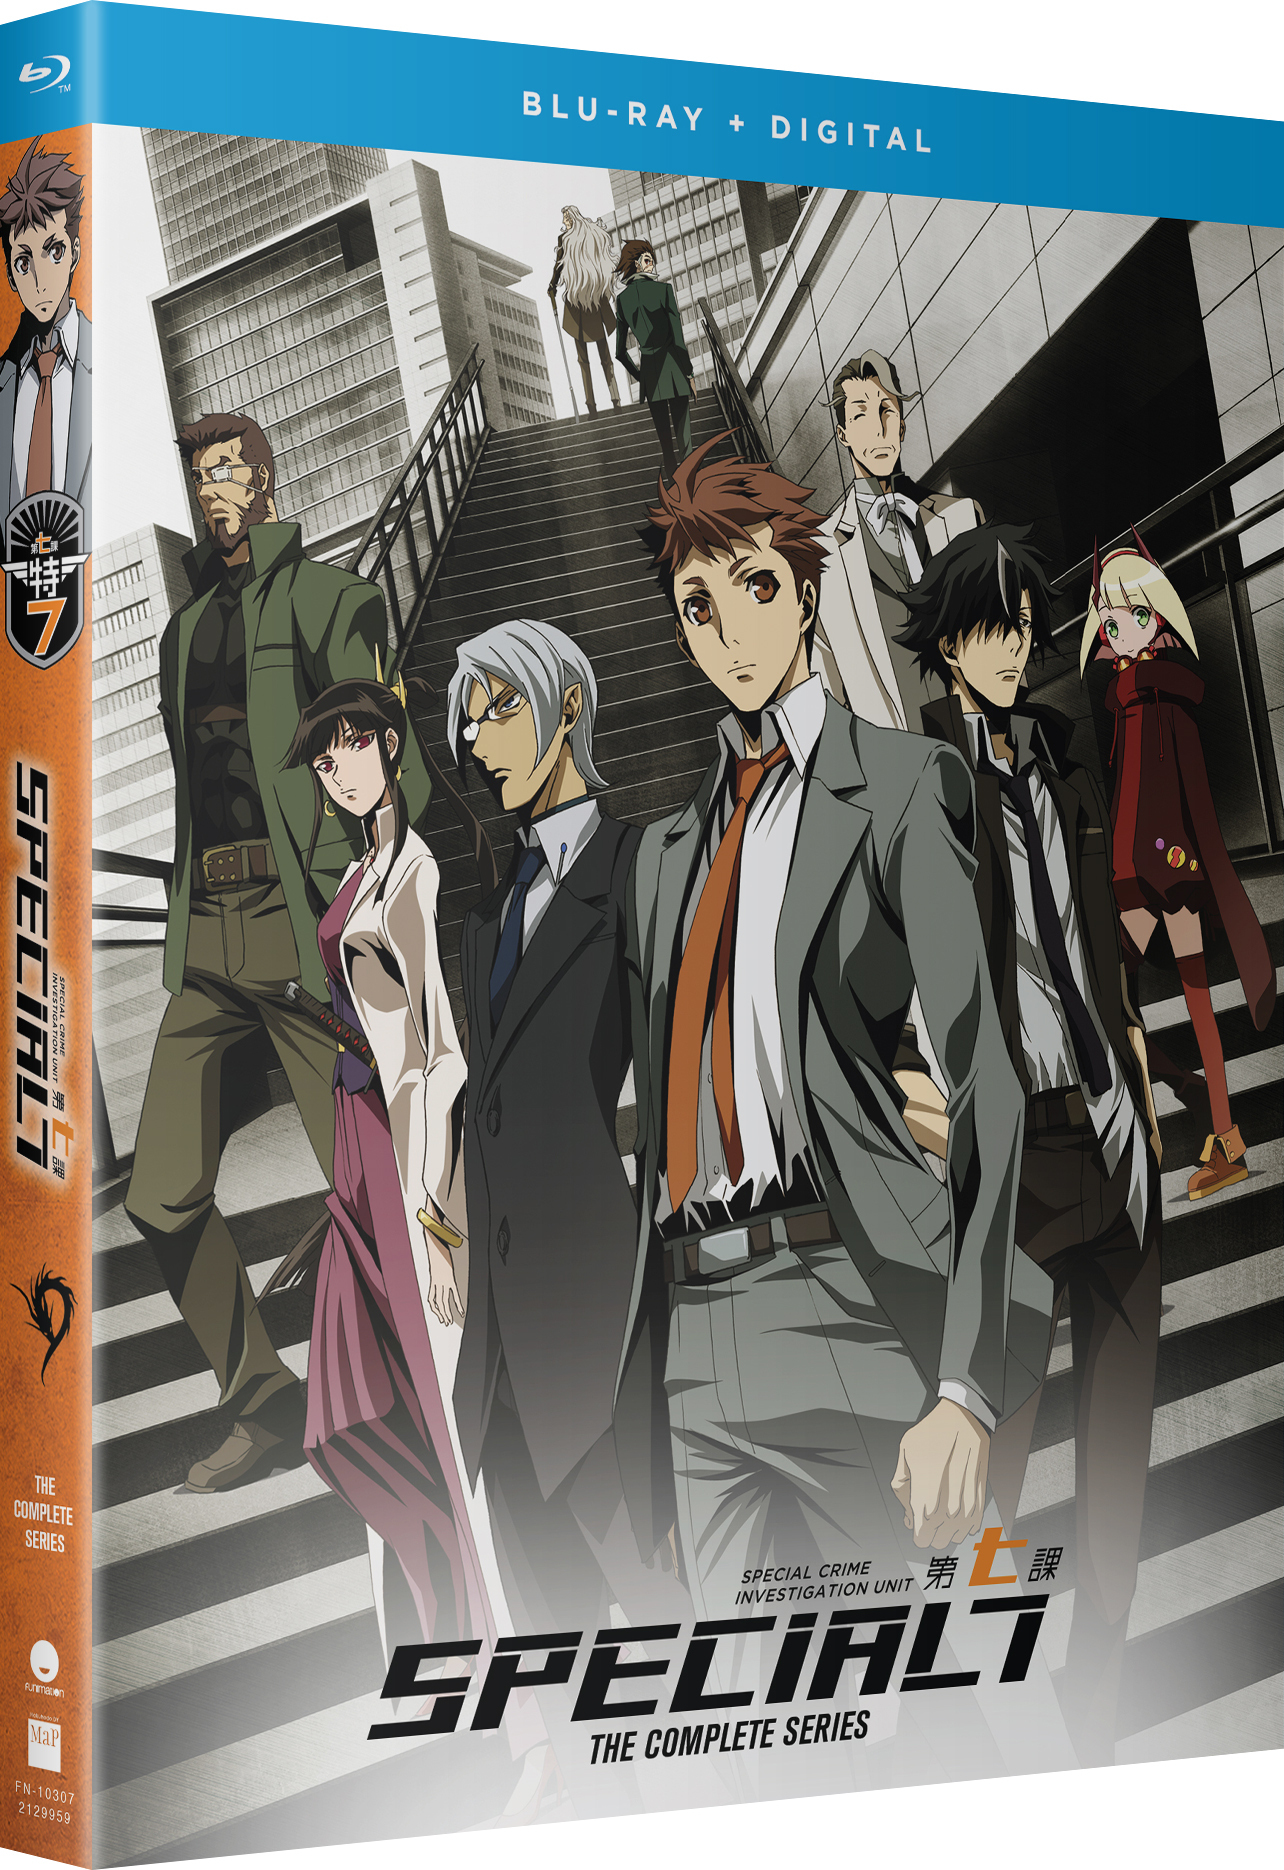 Special 7 Special Crime Investigation Unit Blu-ray